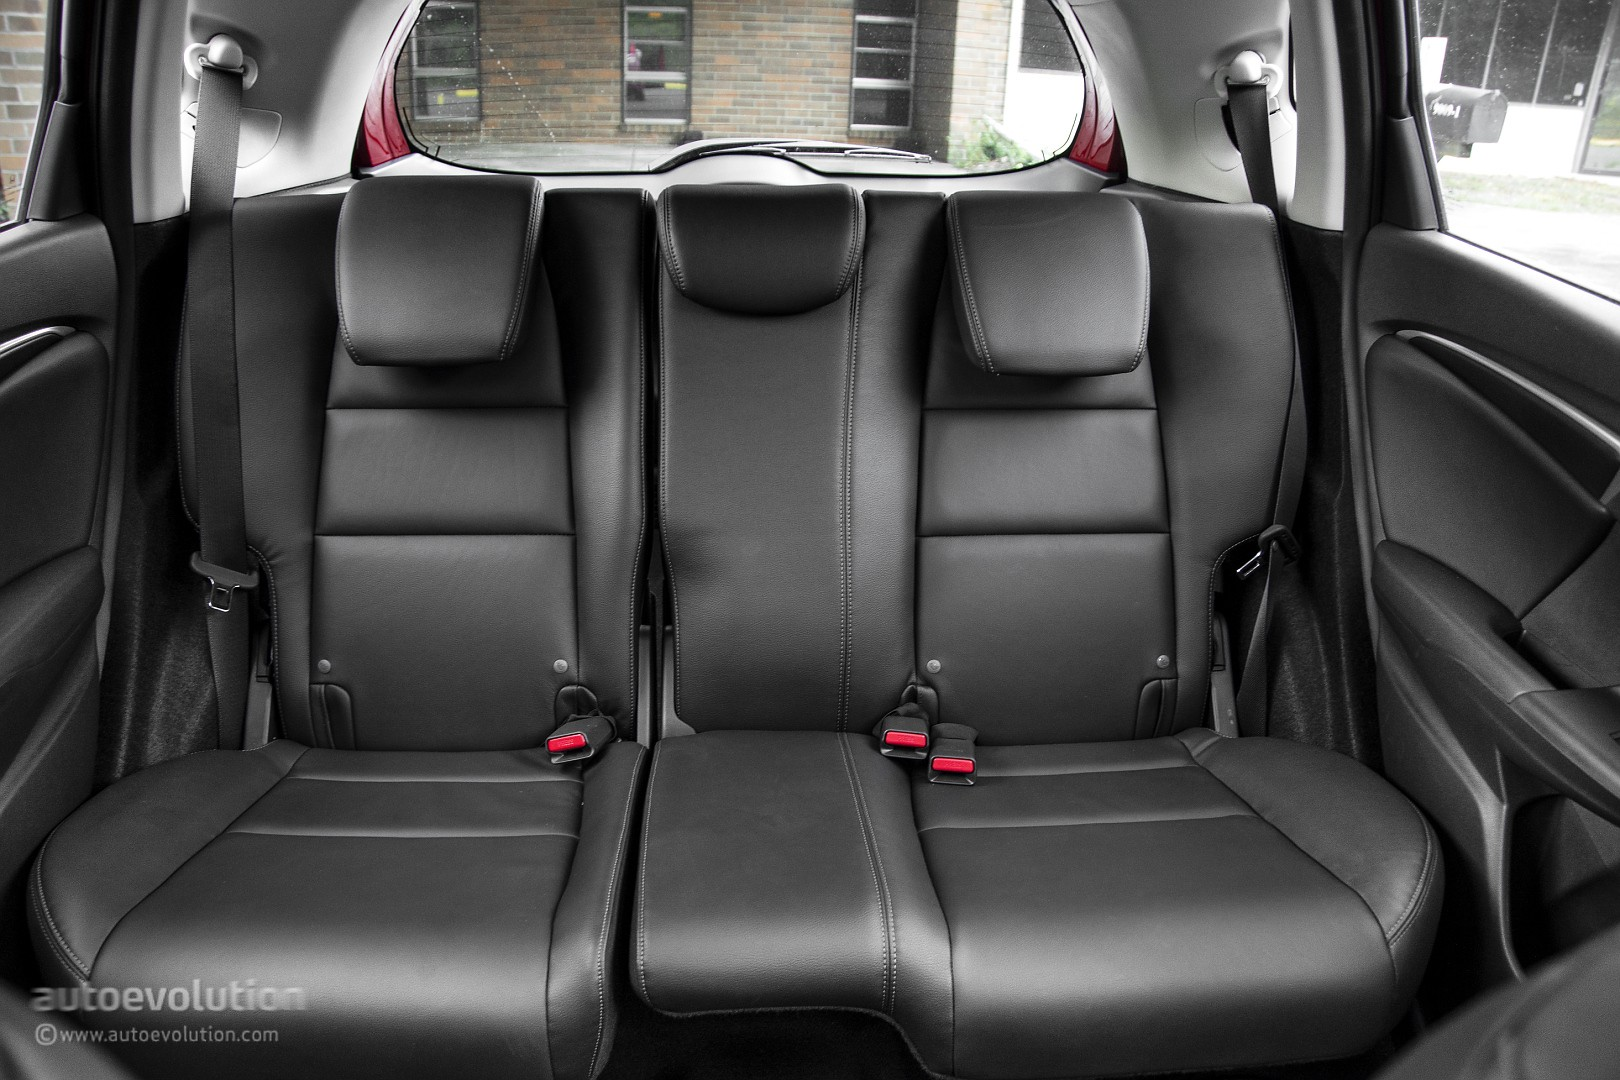 Image Result For Car Seats Rear